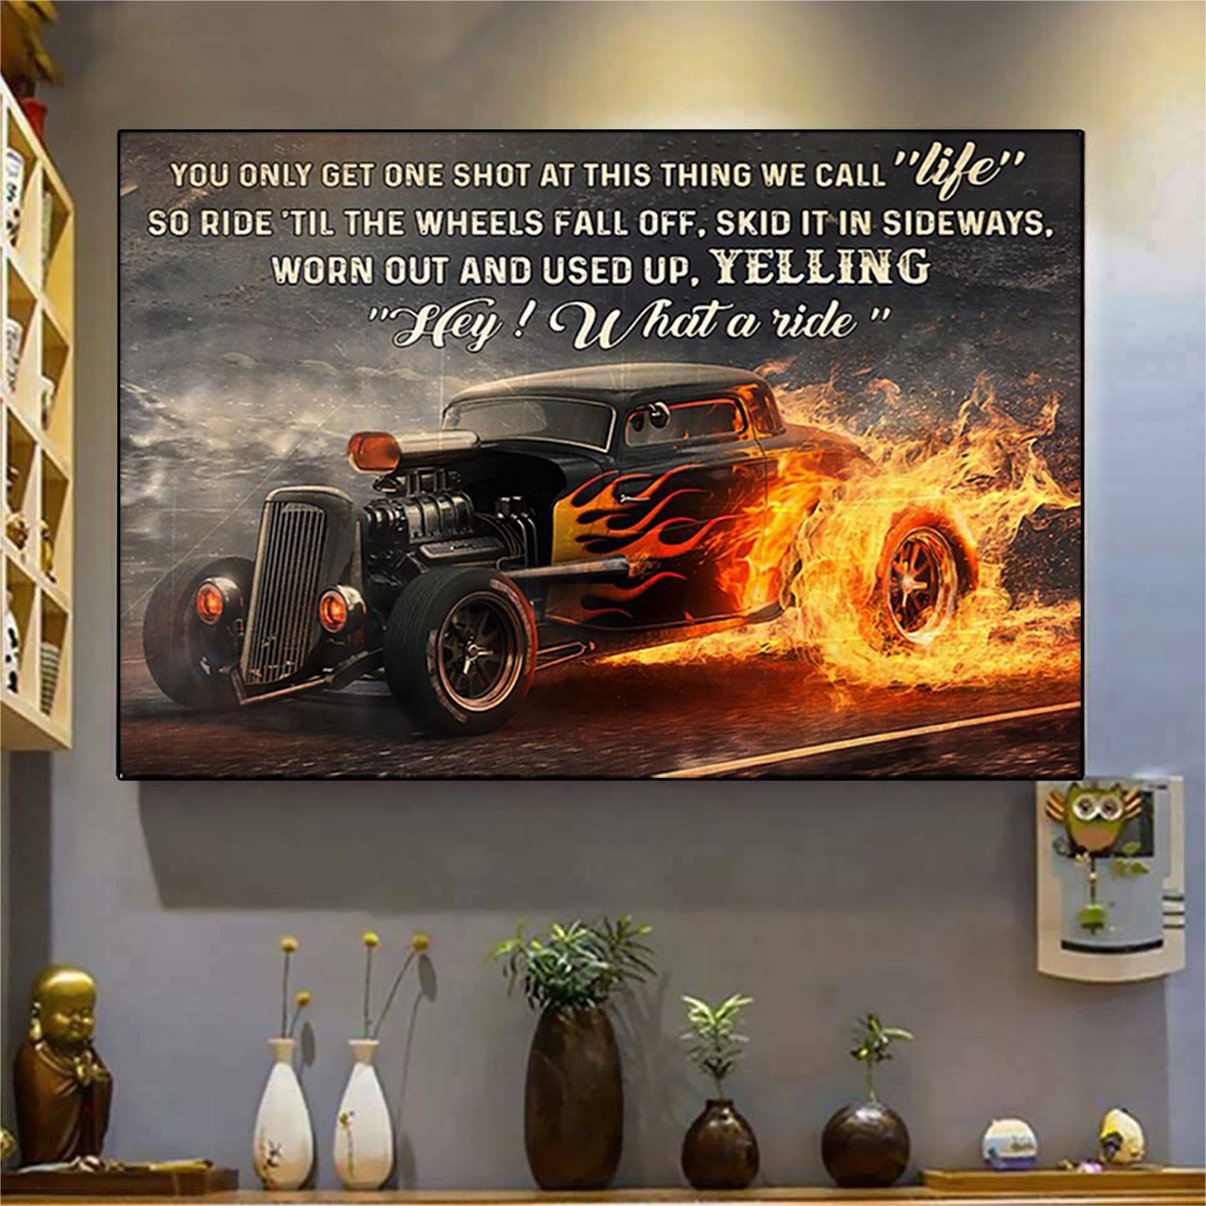 Hot rod what a ride poster A2